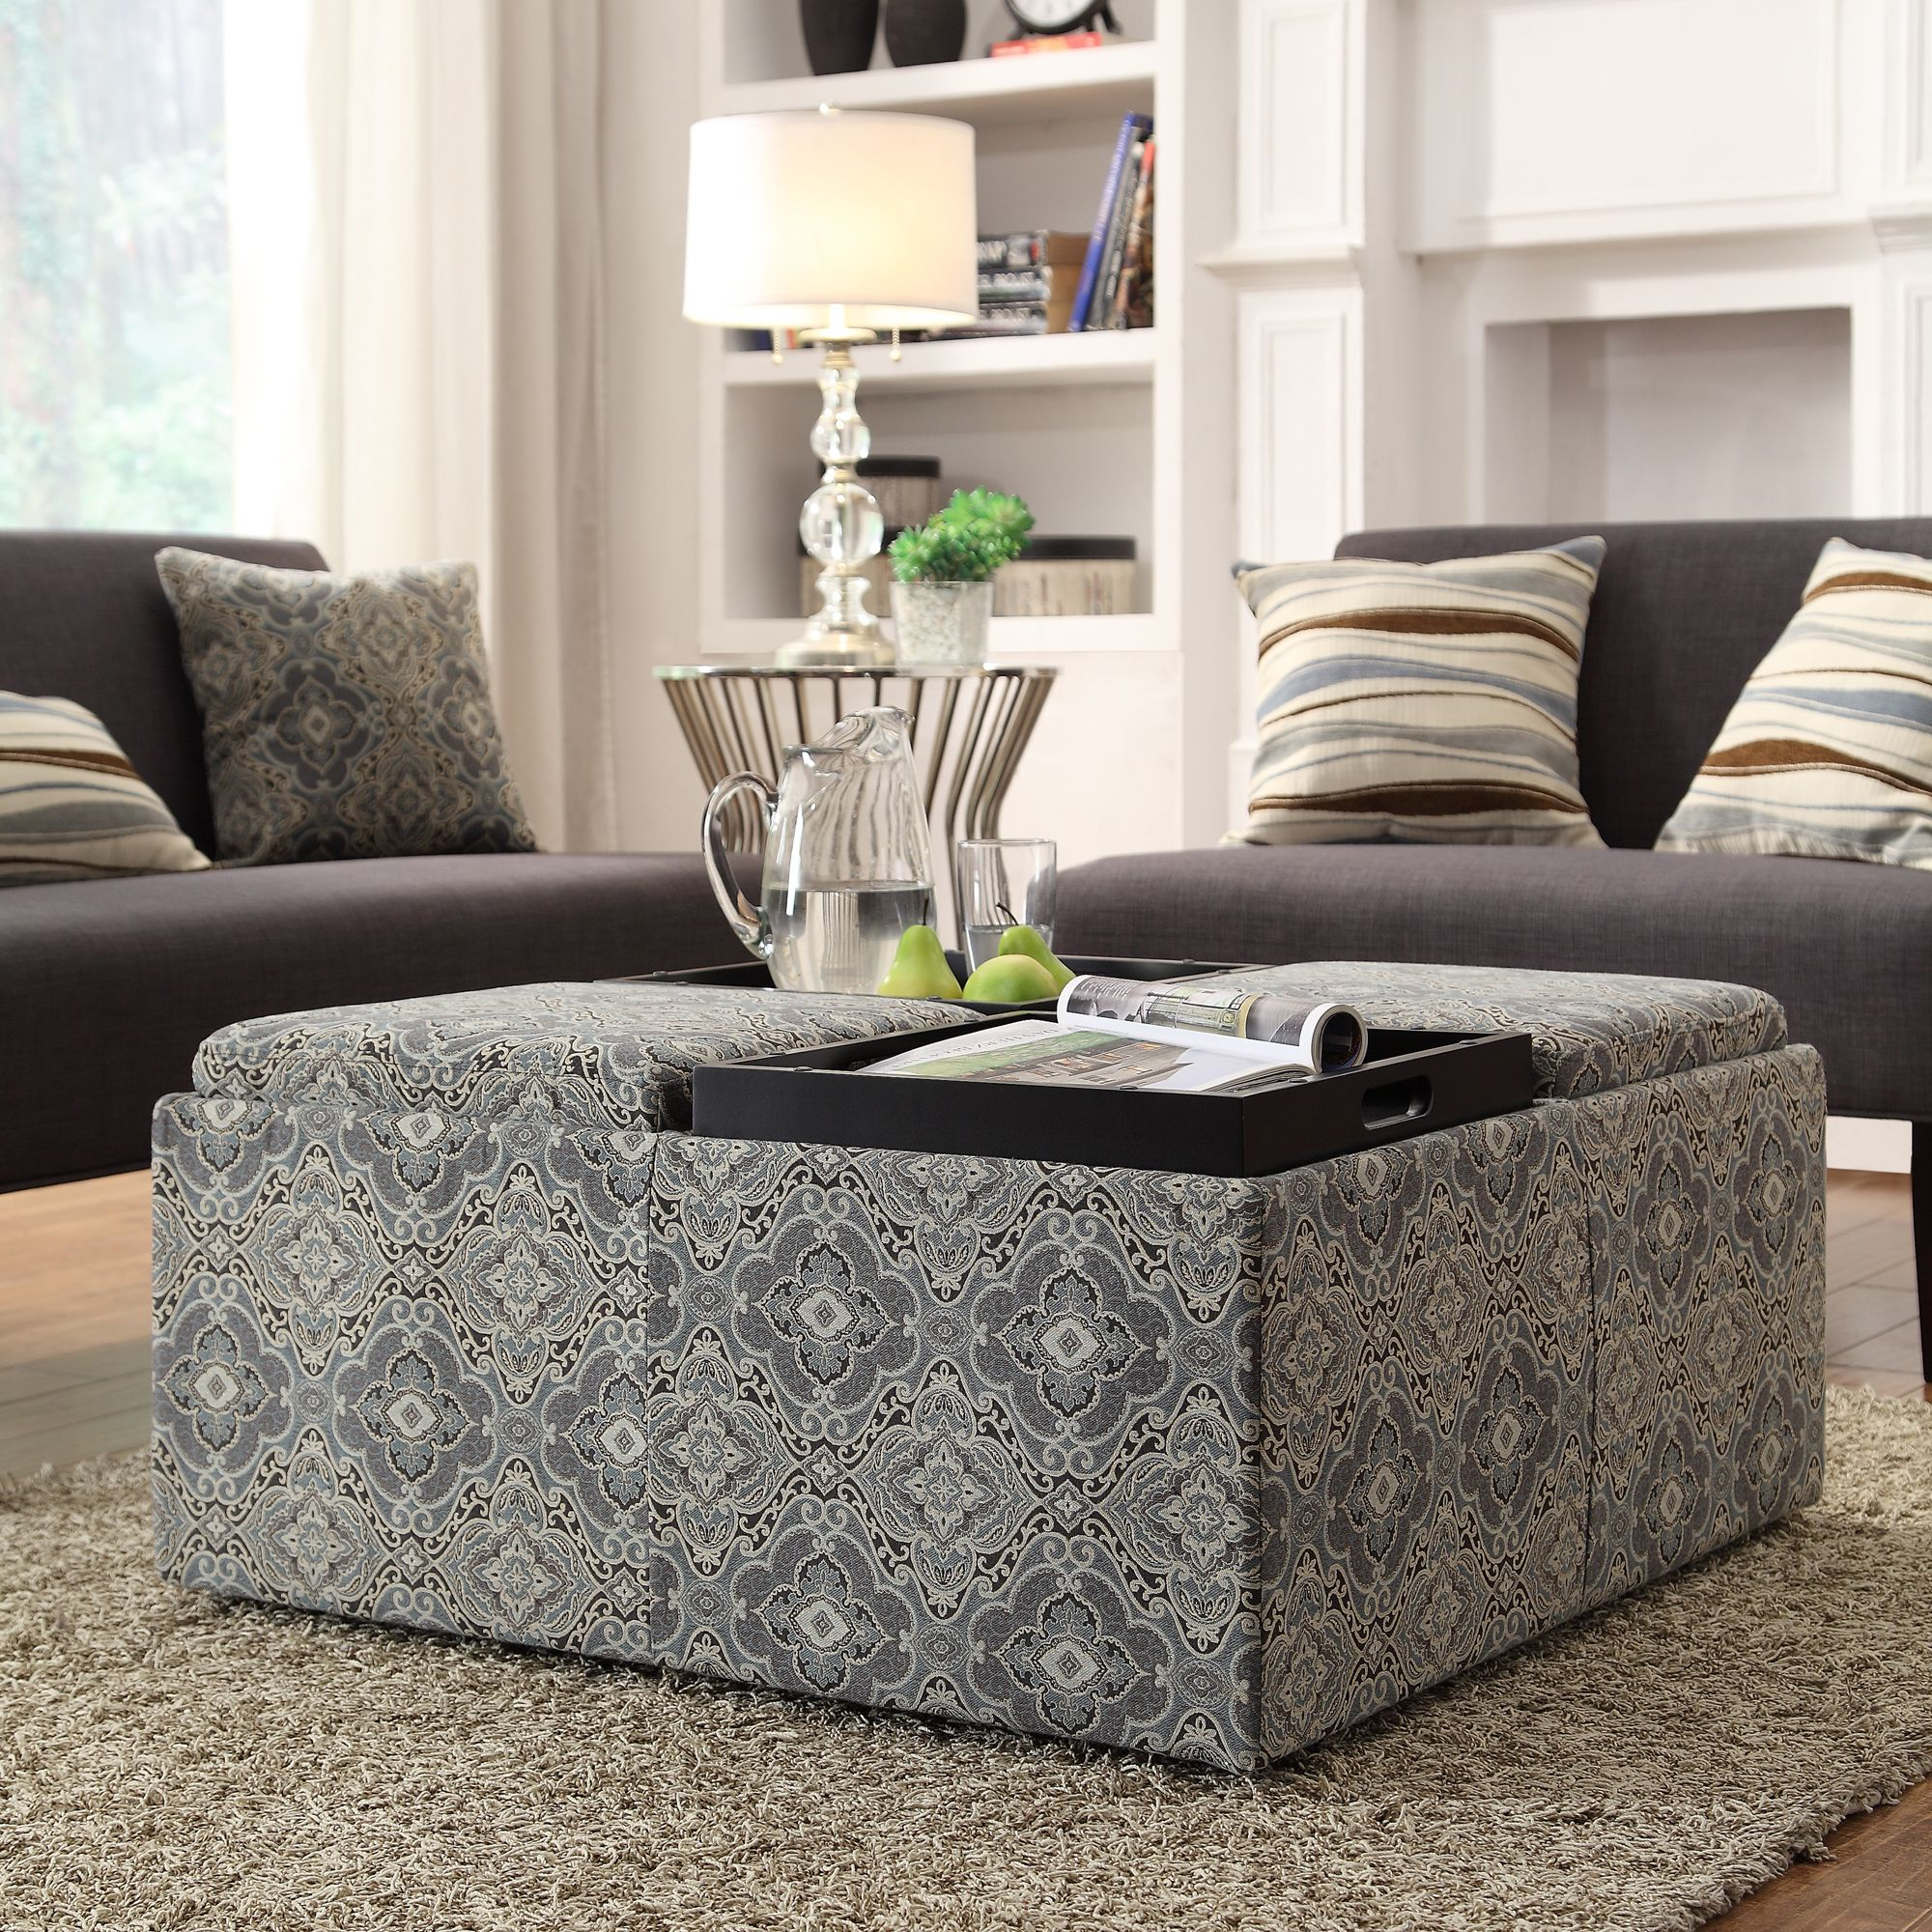 Bring Contemporary Style To Your Home With The Highly Functional, Highly  Versatile Oxford Creek Fulton